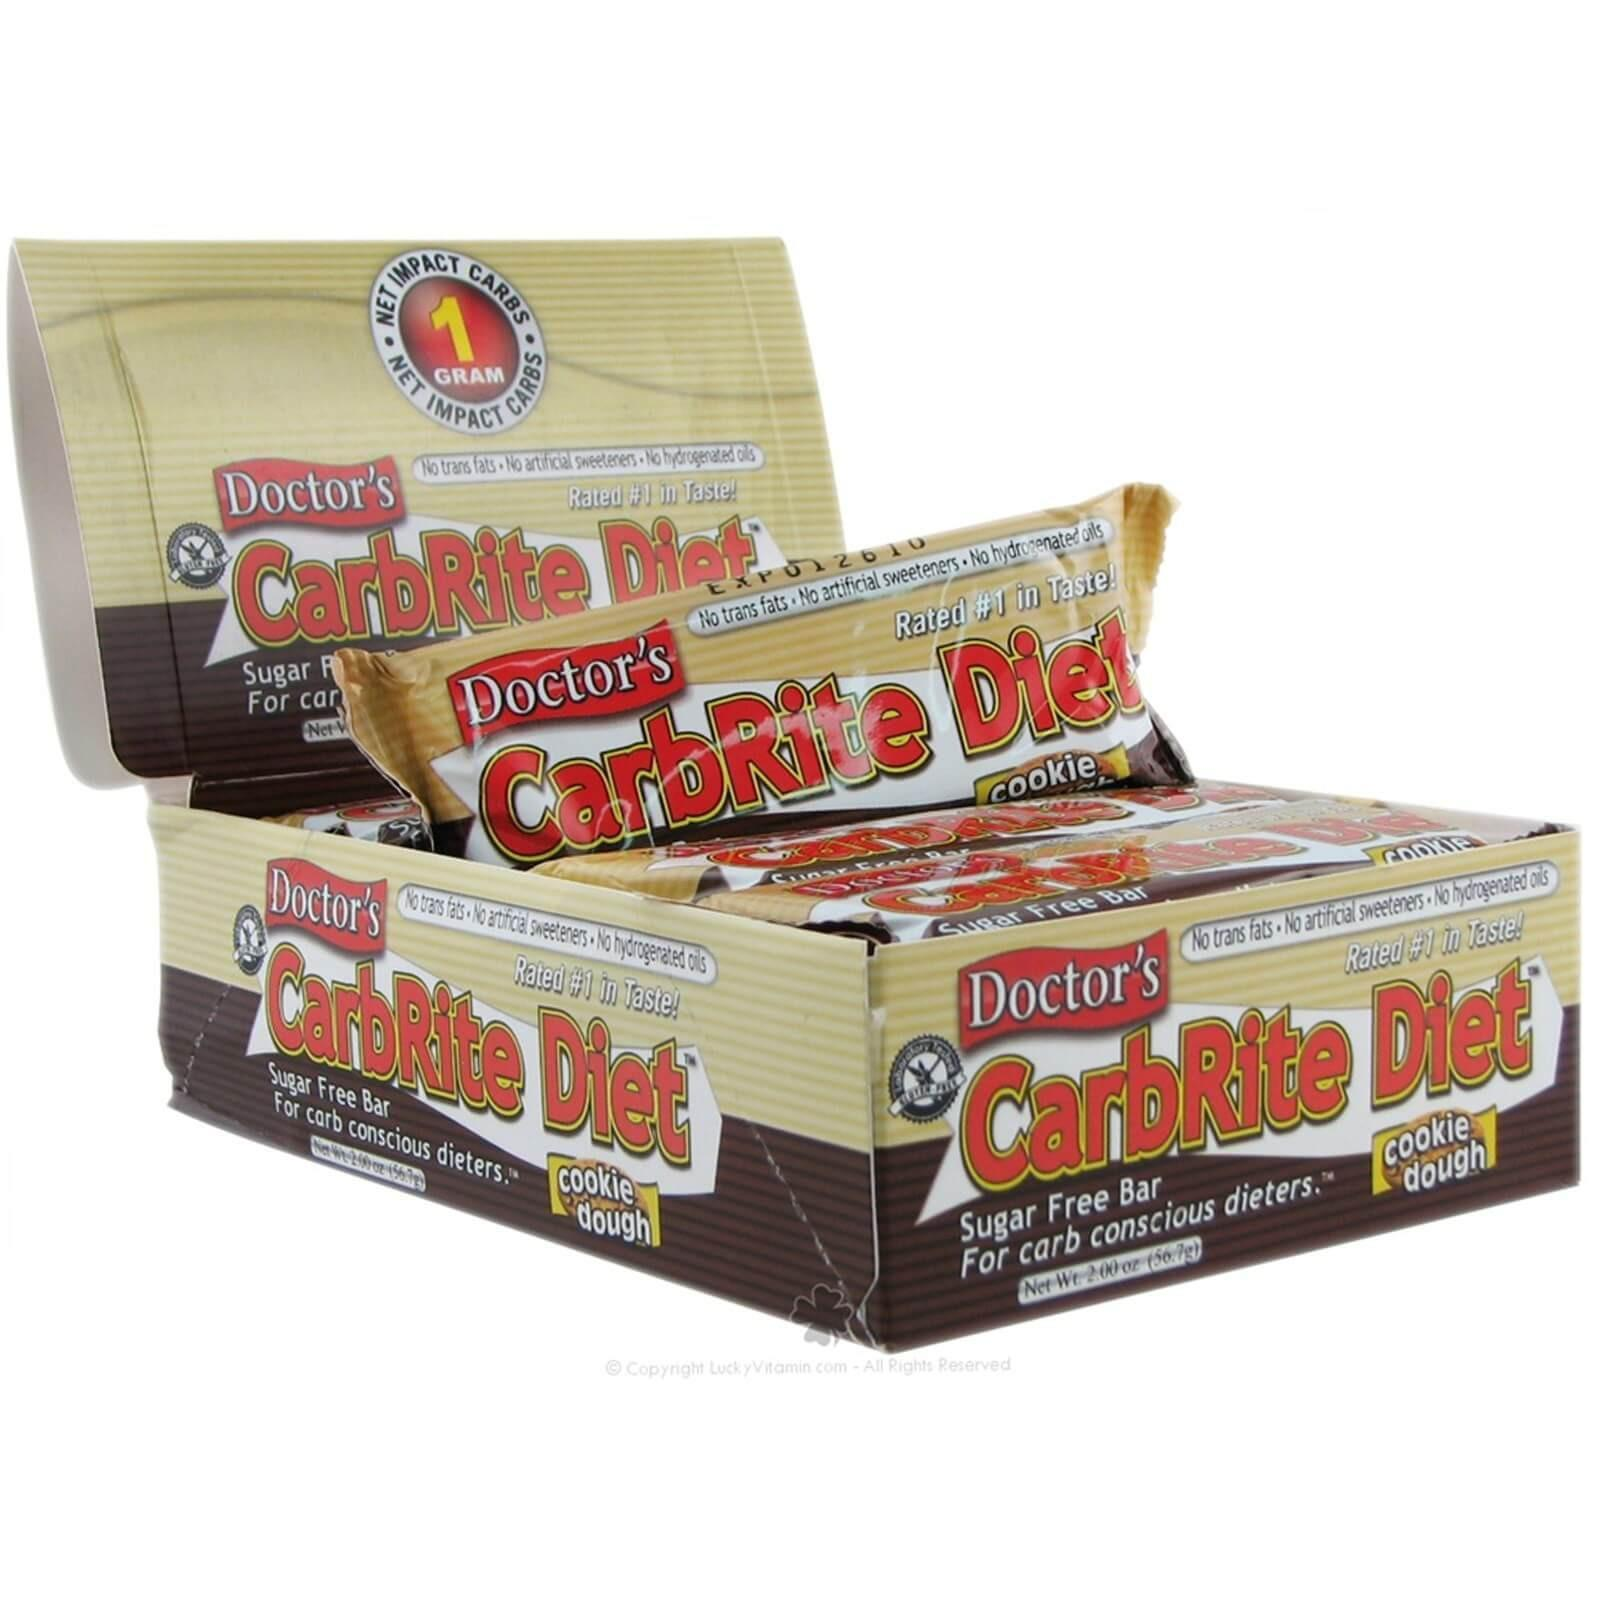 Universal Nutrition Doctor's CarbRite Diet